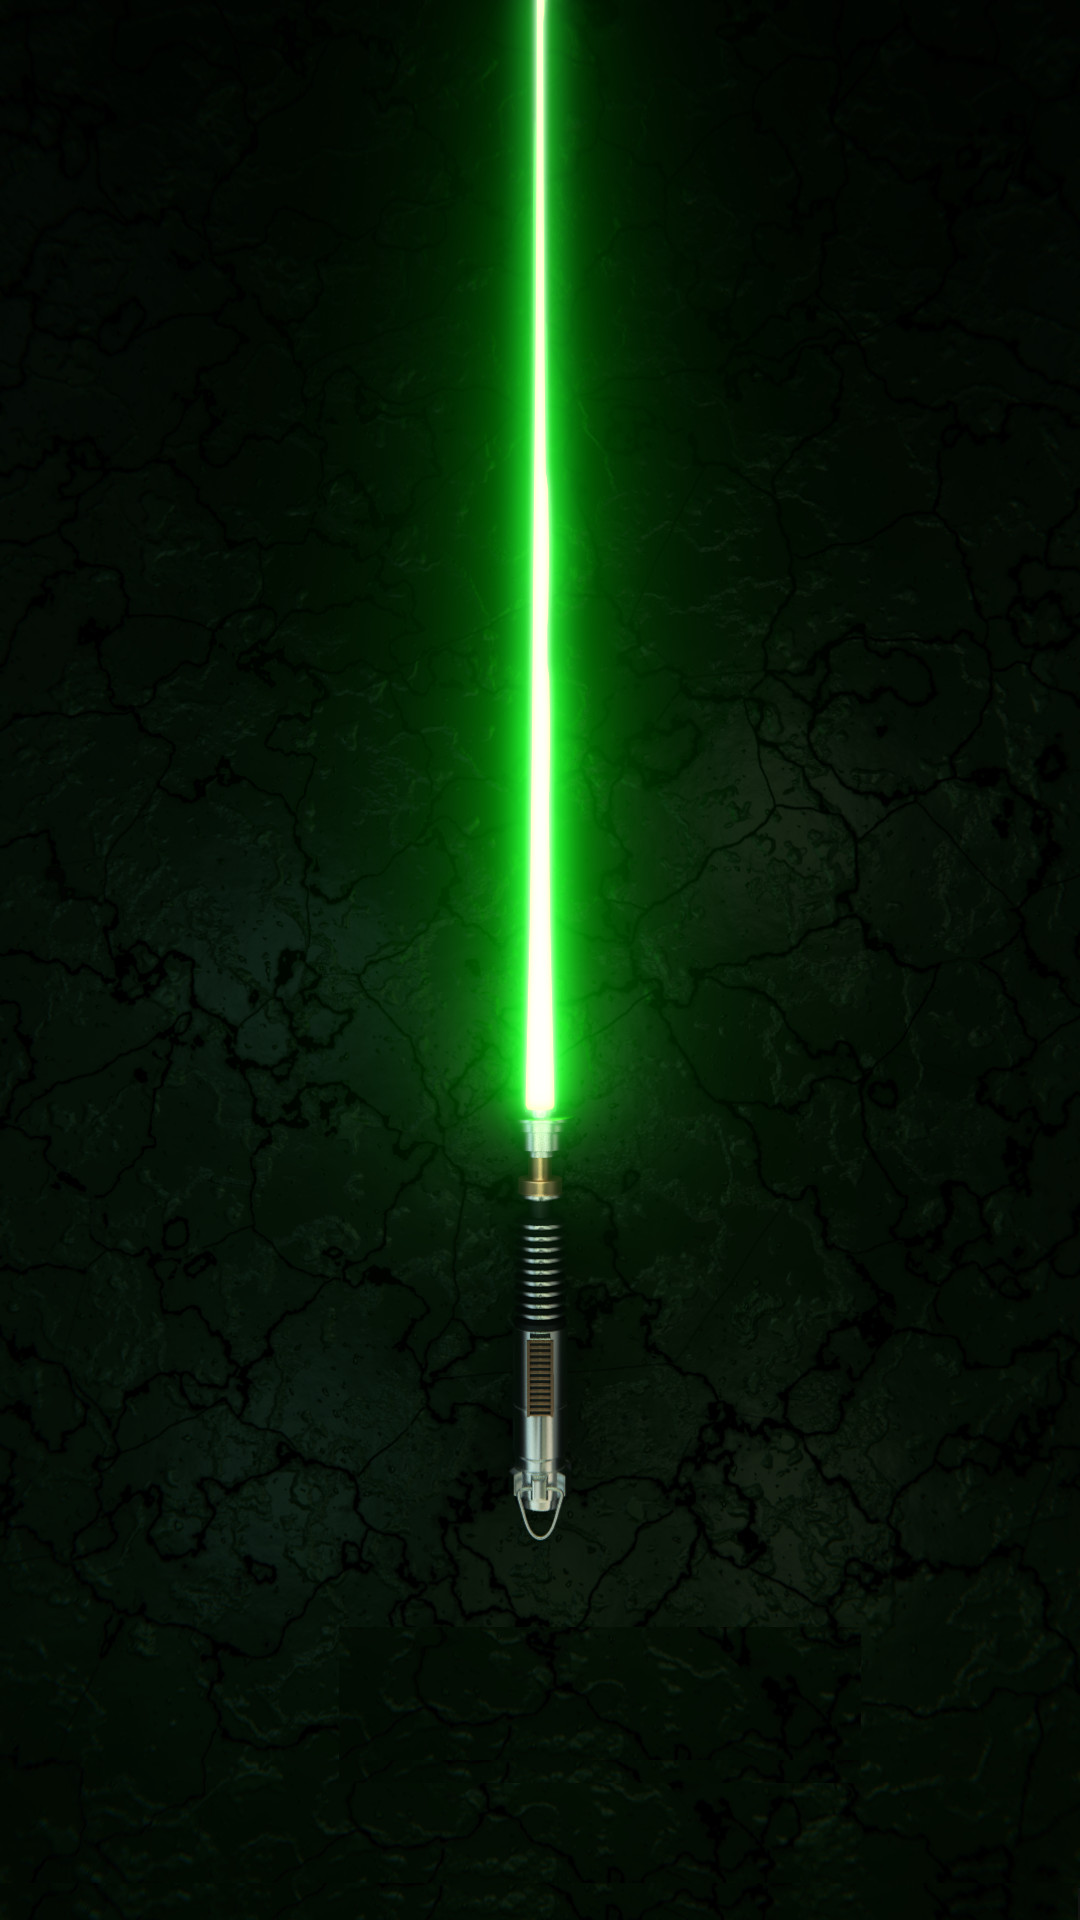 Star Wars Lightsaber – Tap to see more exciting Star Wars wallpaper!  @mobile9